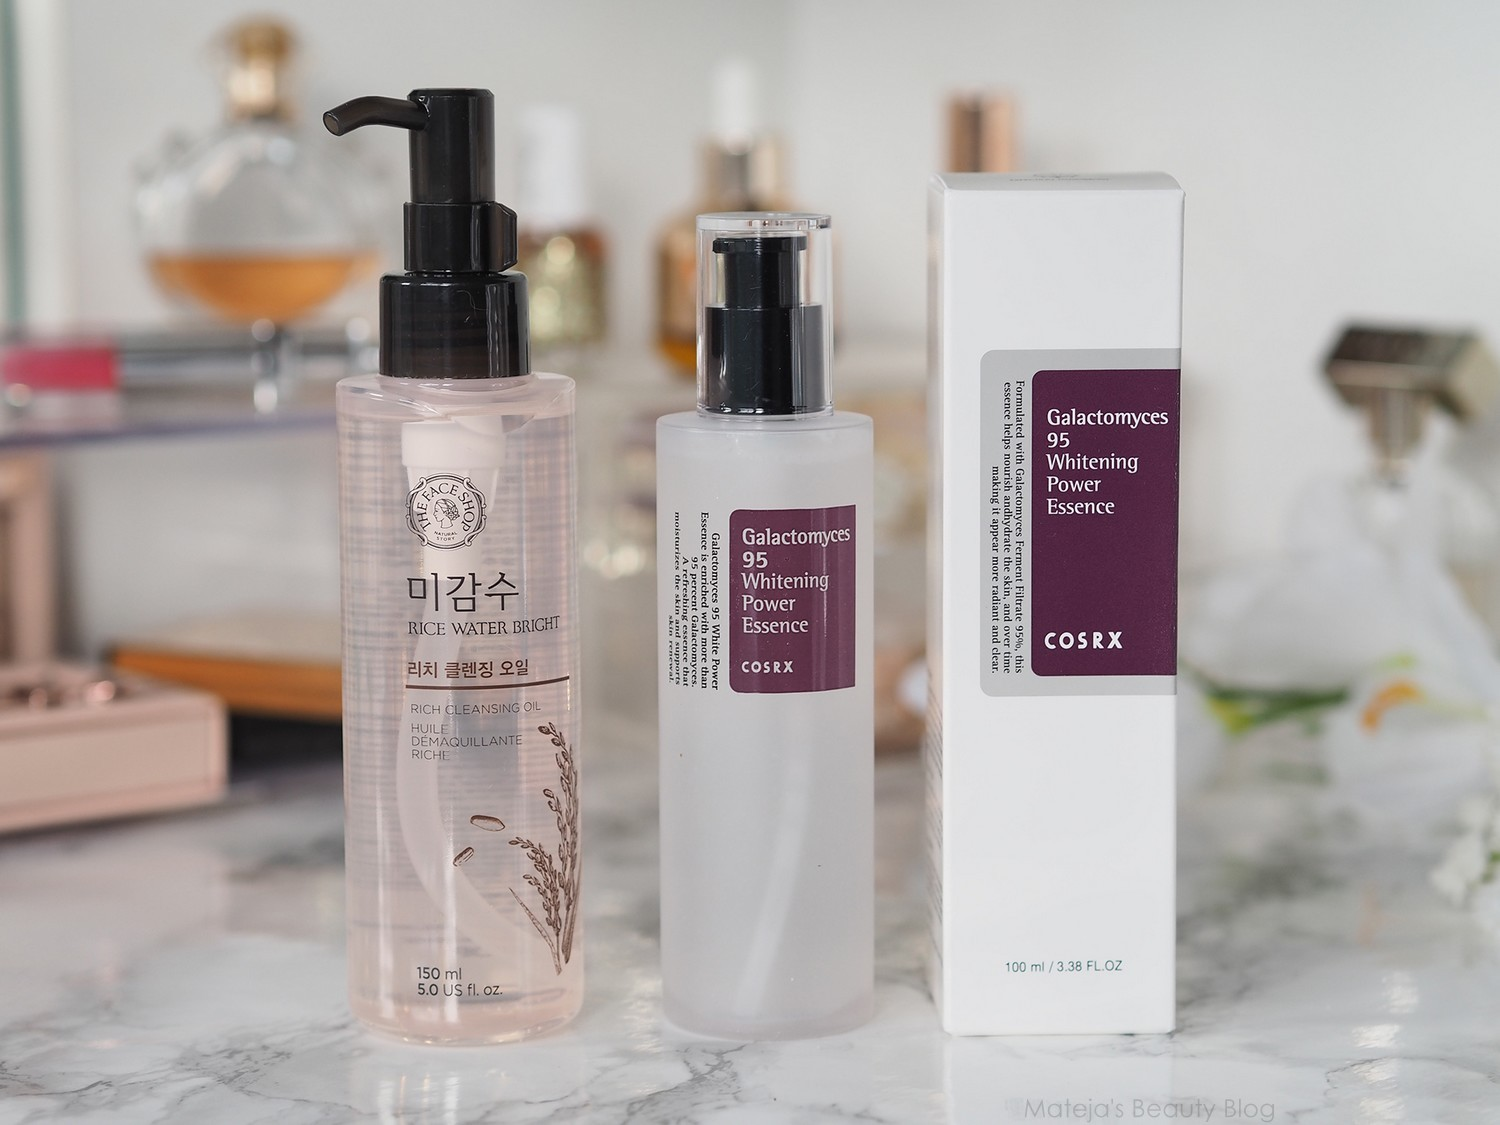 New In K Beauty Matejas Blog Bloglovin Twin Pack Ovale Micellar Water Brightening 200ml The Face Shop Rice Bright Rich Cleansing Oil